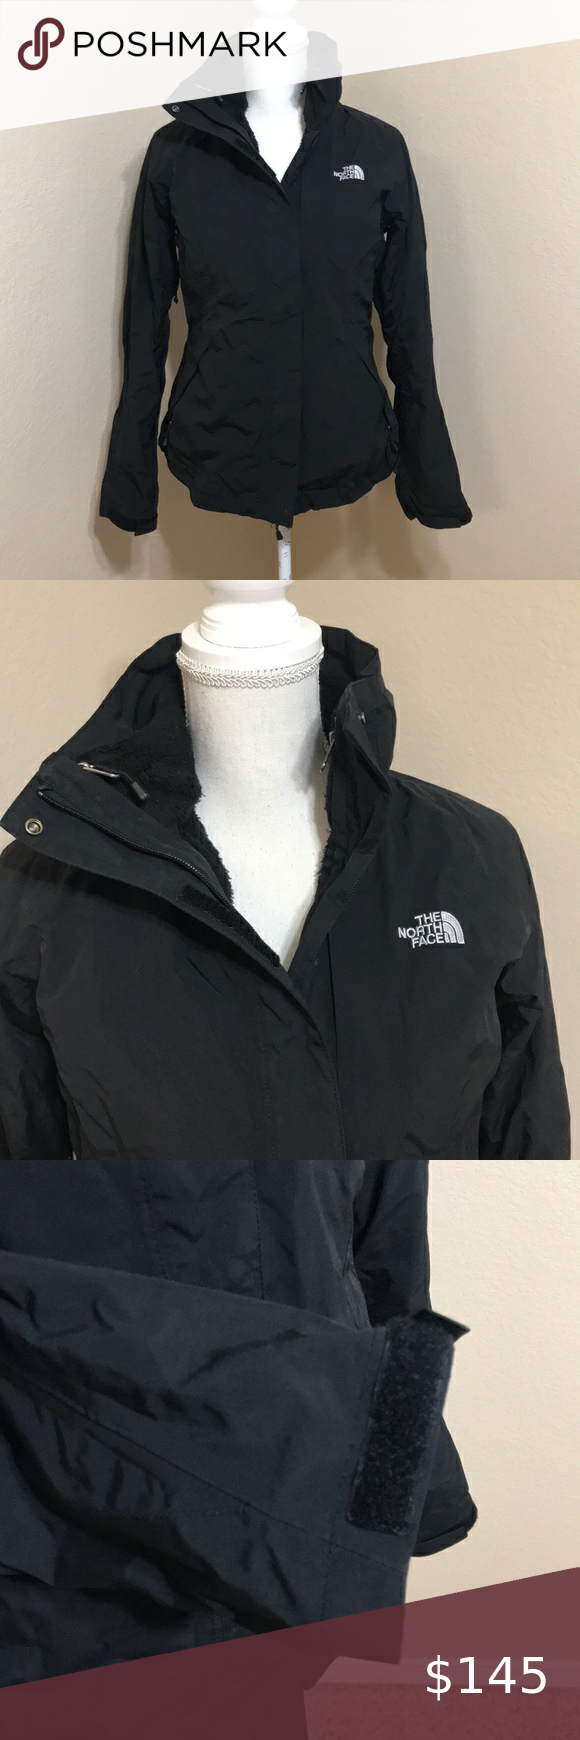 The Northface 2 In 1 Jacket Jackets The North Face Clothes Design [ 1740 x 580 Pixel ]